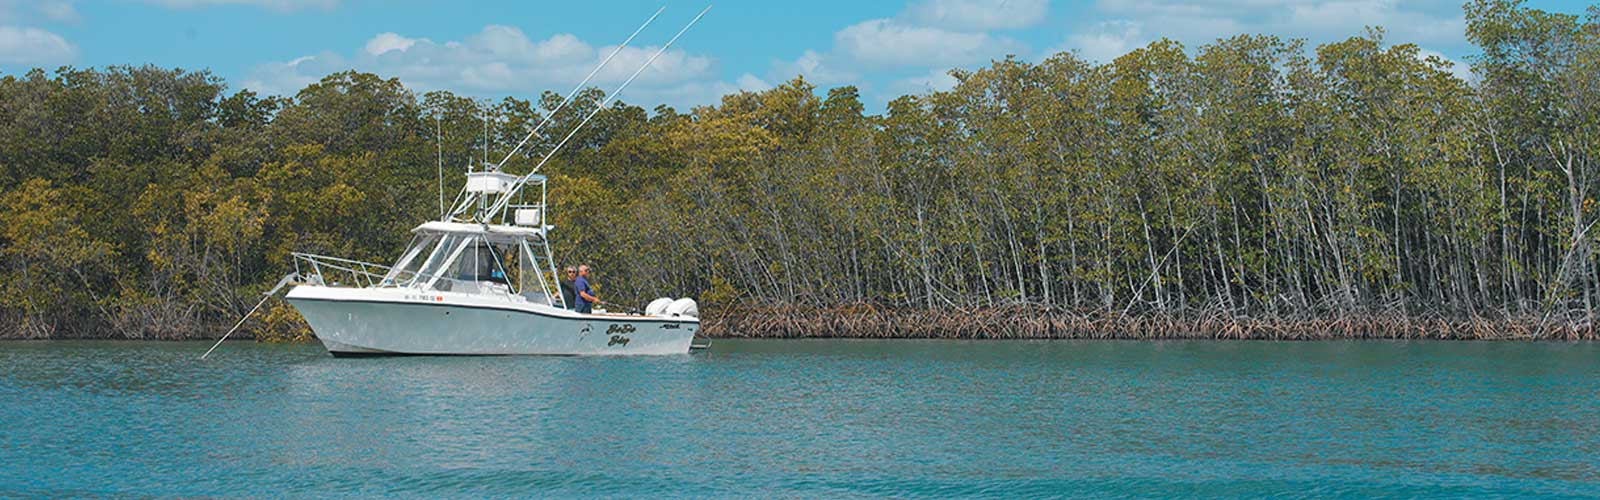 Treasure Coast Fishing Hot Spots